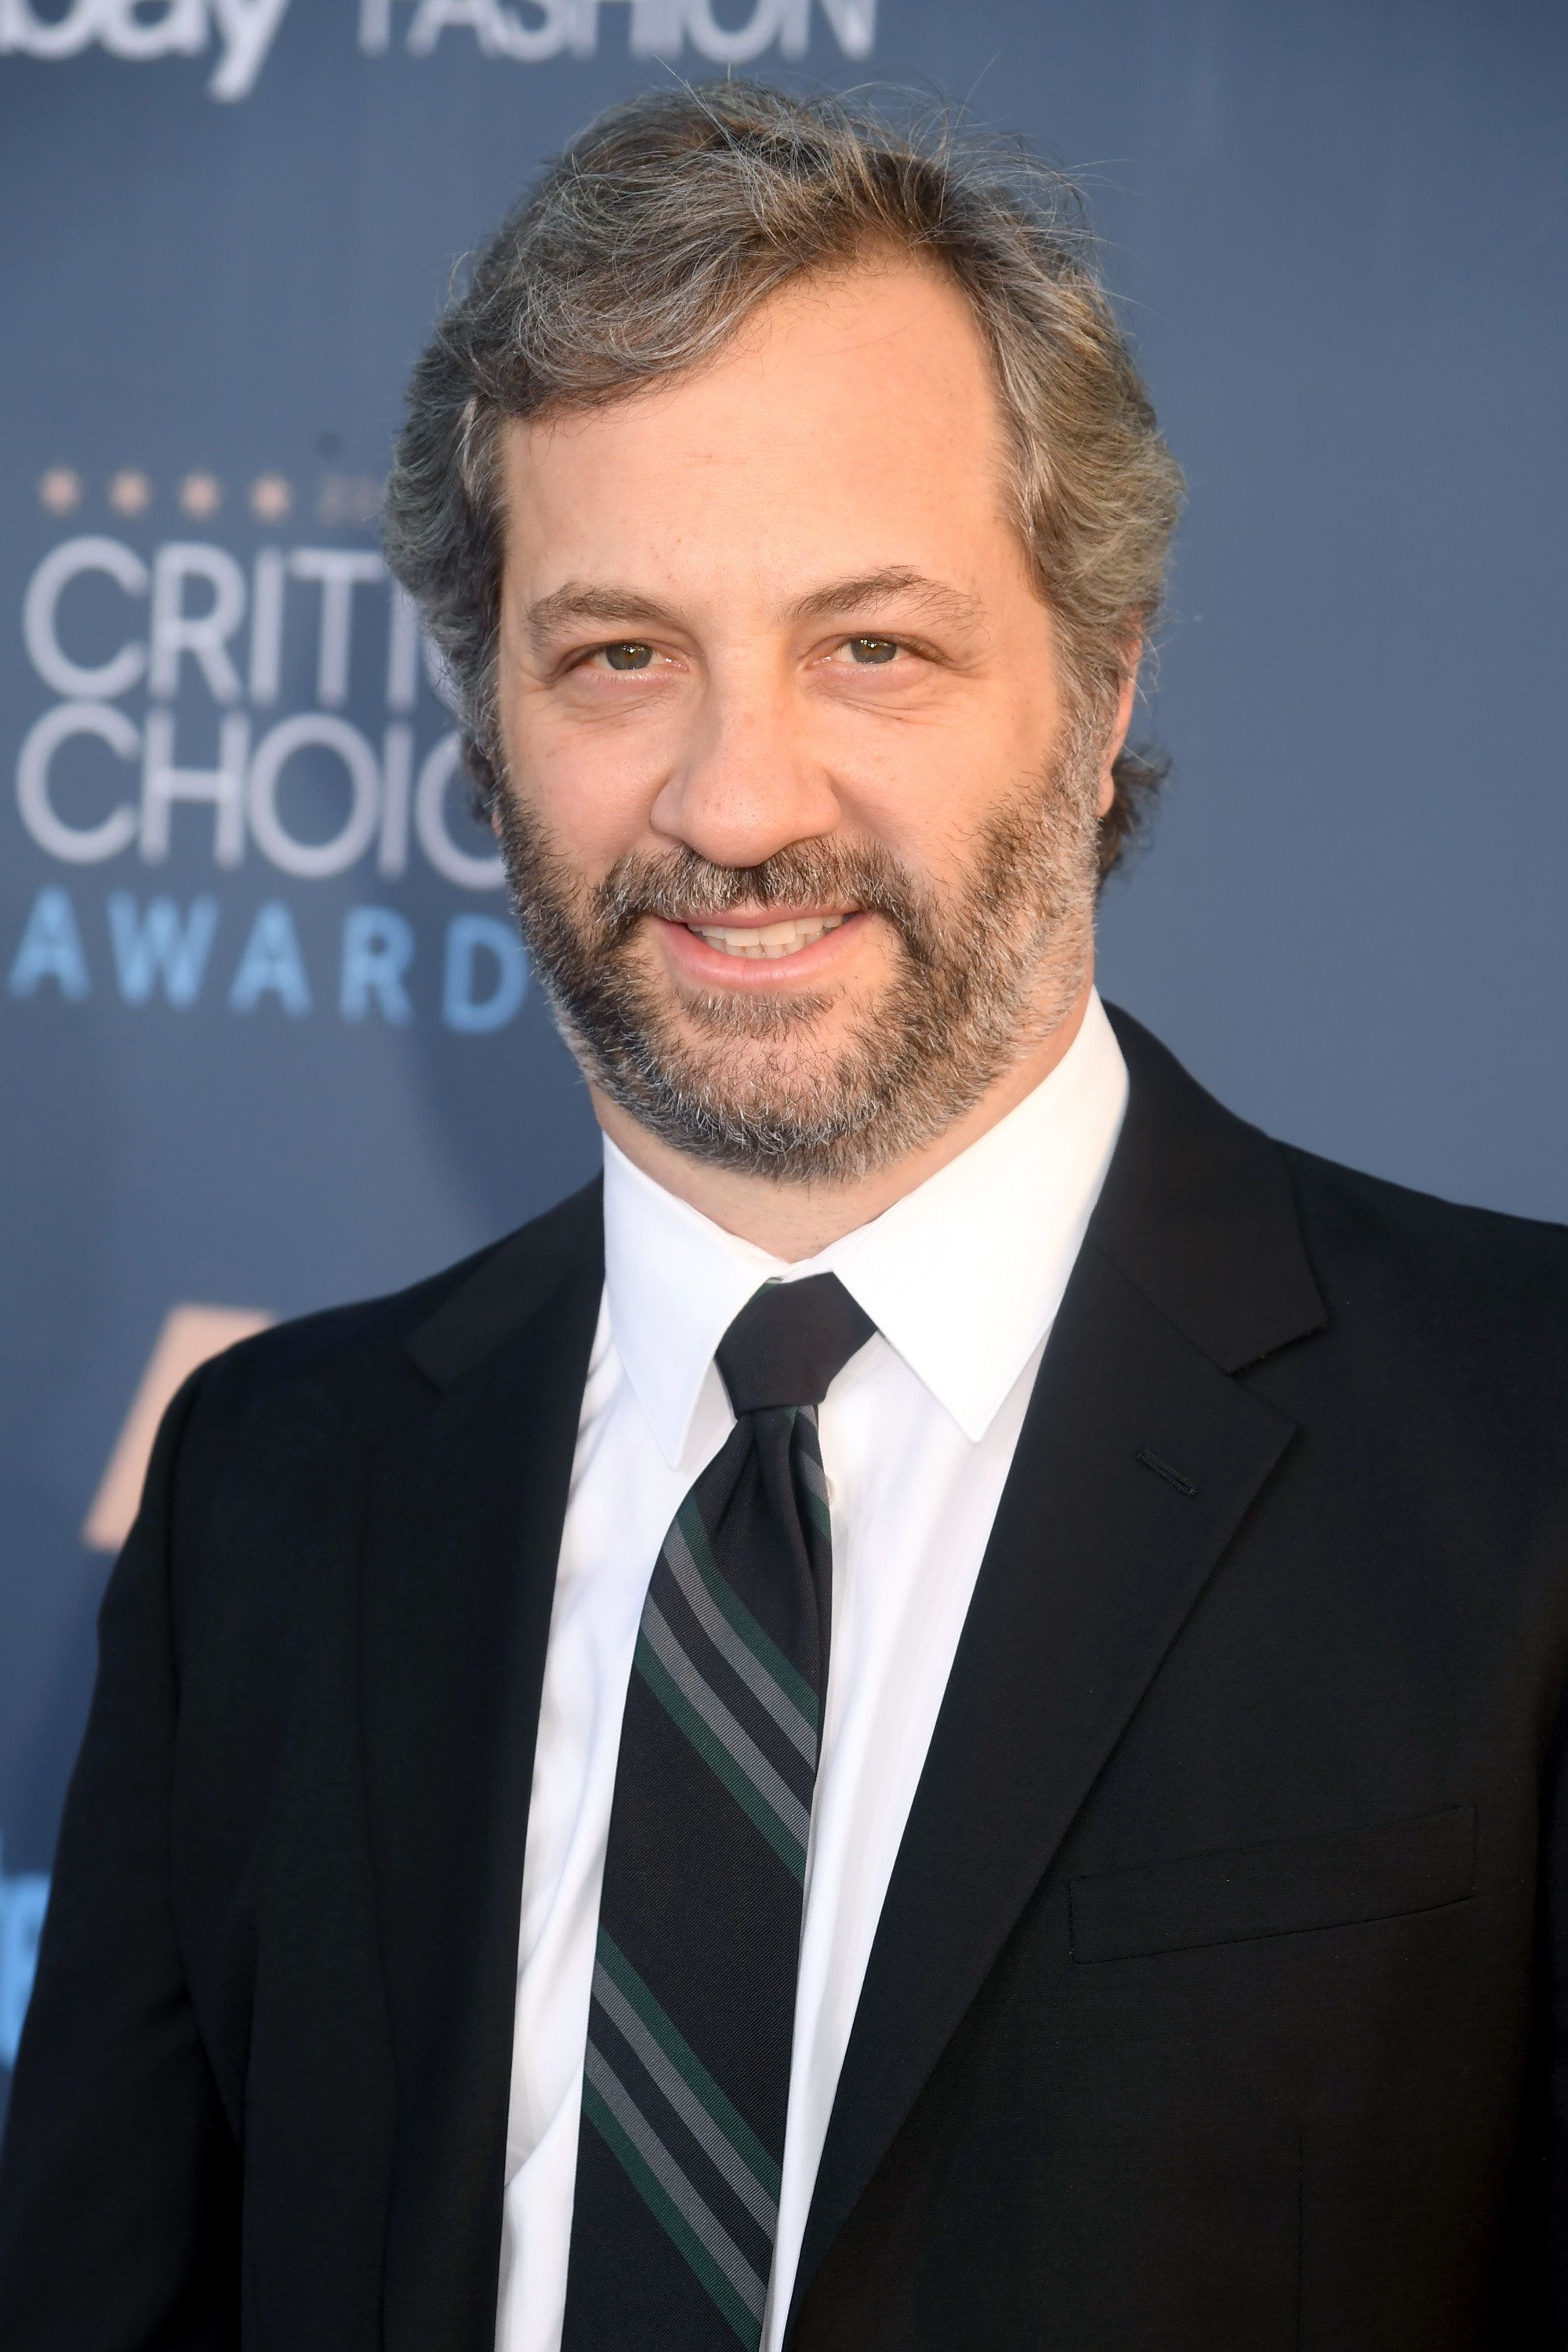 SANTA MONICA, CA - DECEMBER 11:  Producer Judd Apatow attends The 22nd Annual Critics' Choice Awards at Barker Hangar on December 11, 2016 in Santa Monica, California.  (Photo by Jeff Kravitz/FilmMagic)